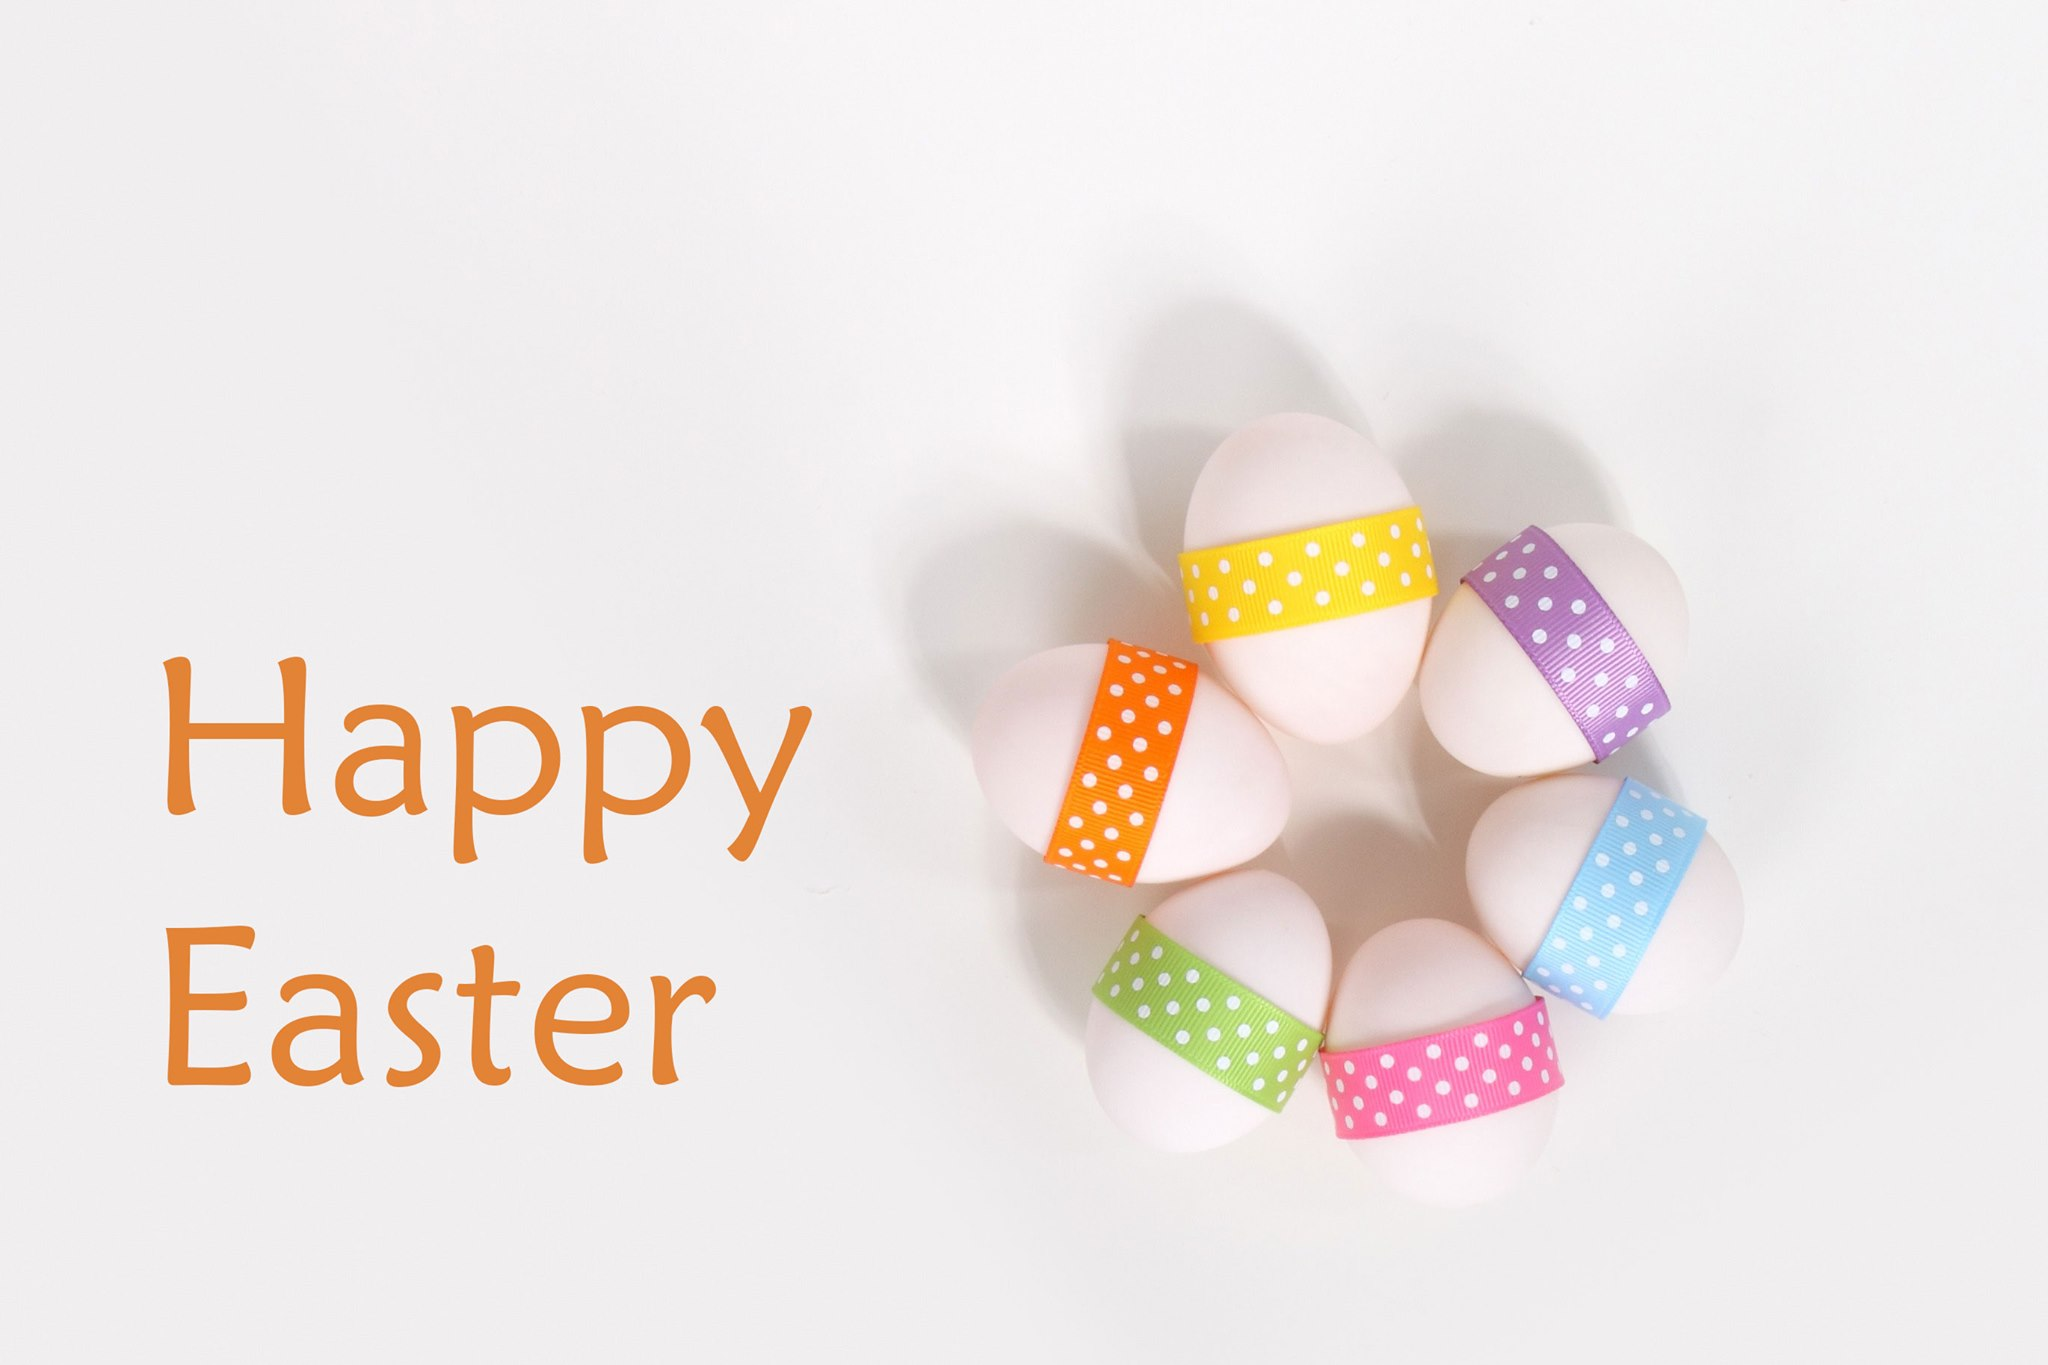 While Easter may be celebrated a little differently this year, we wish you and y...